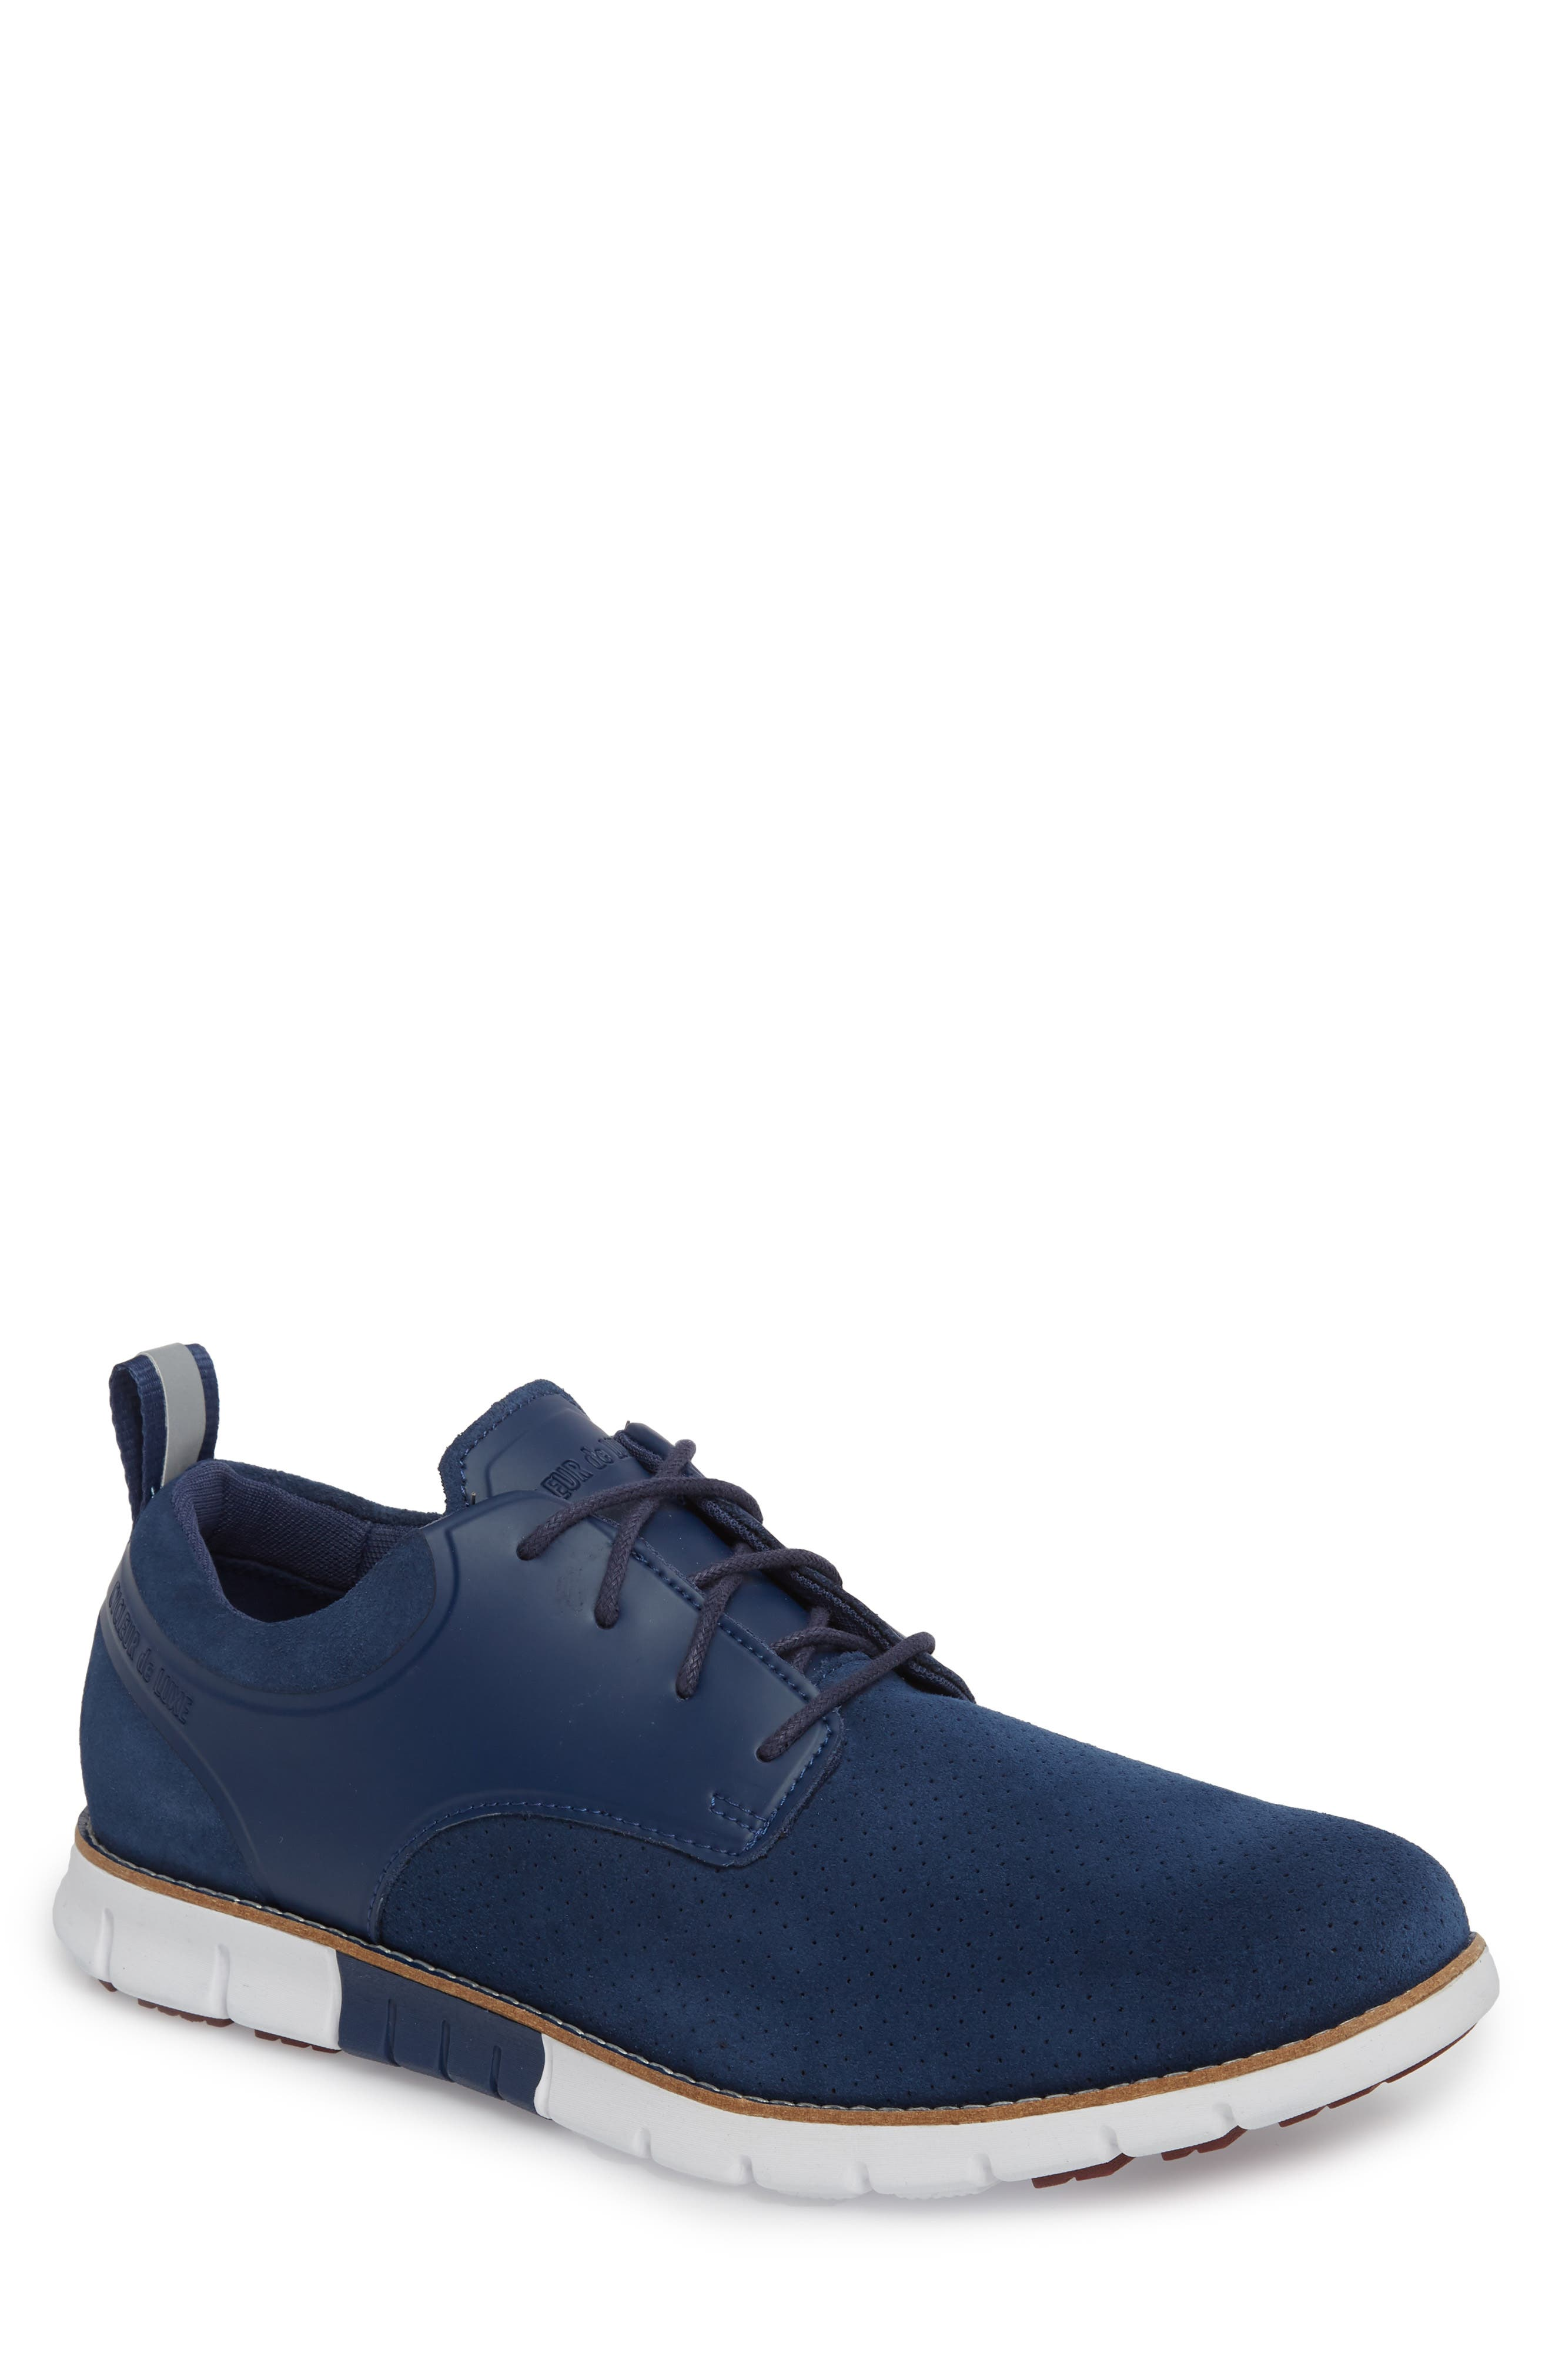 Ridley Perforated Low Top Sneaker,                         Main,                         color, NAVY LEATHER